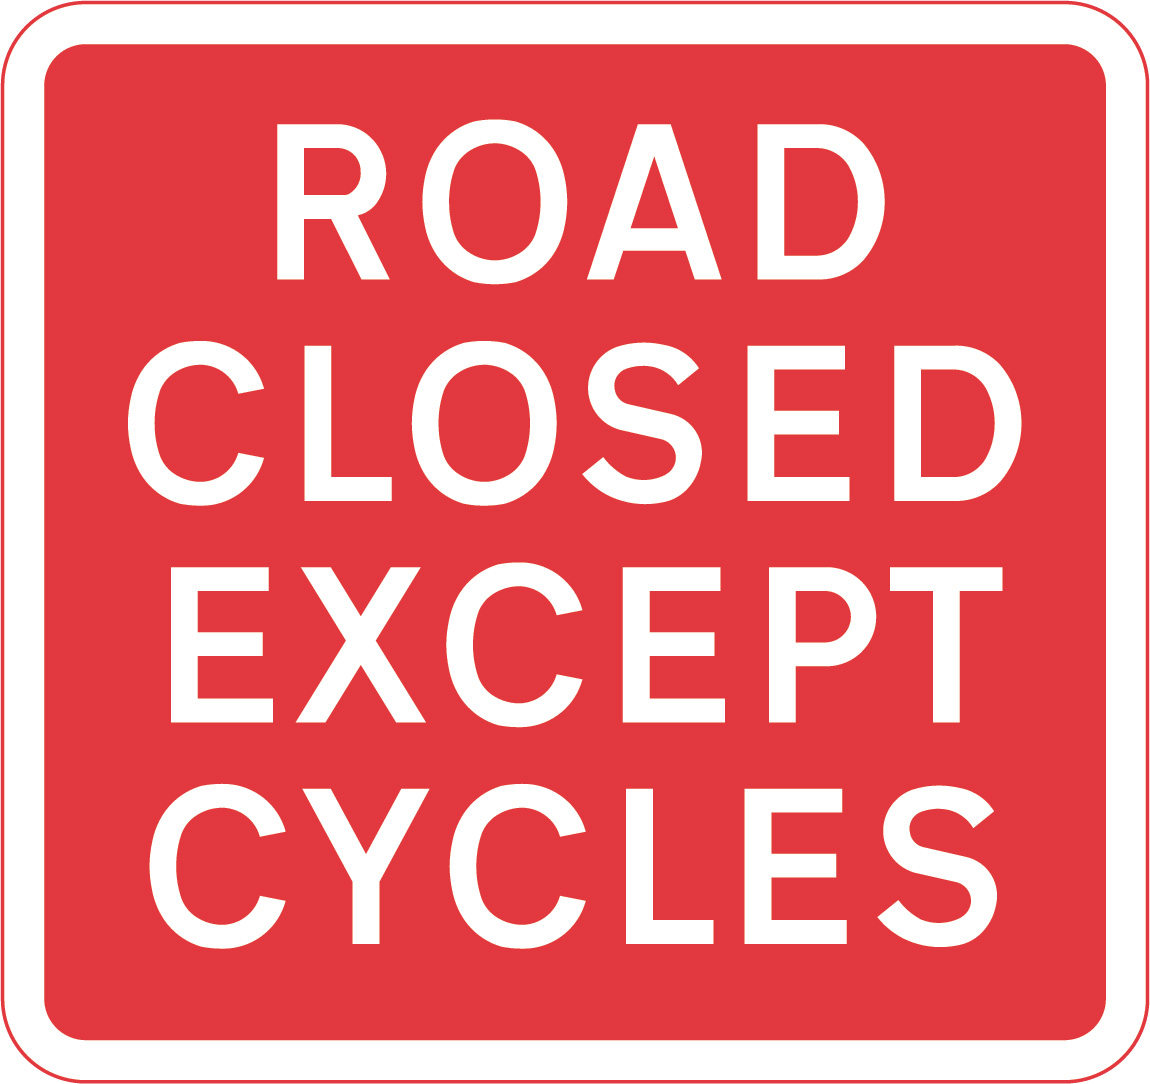 Road closed except cycles sign